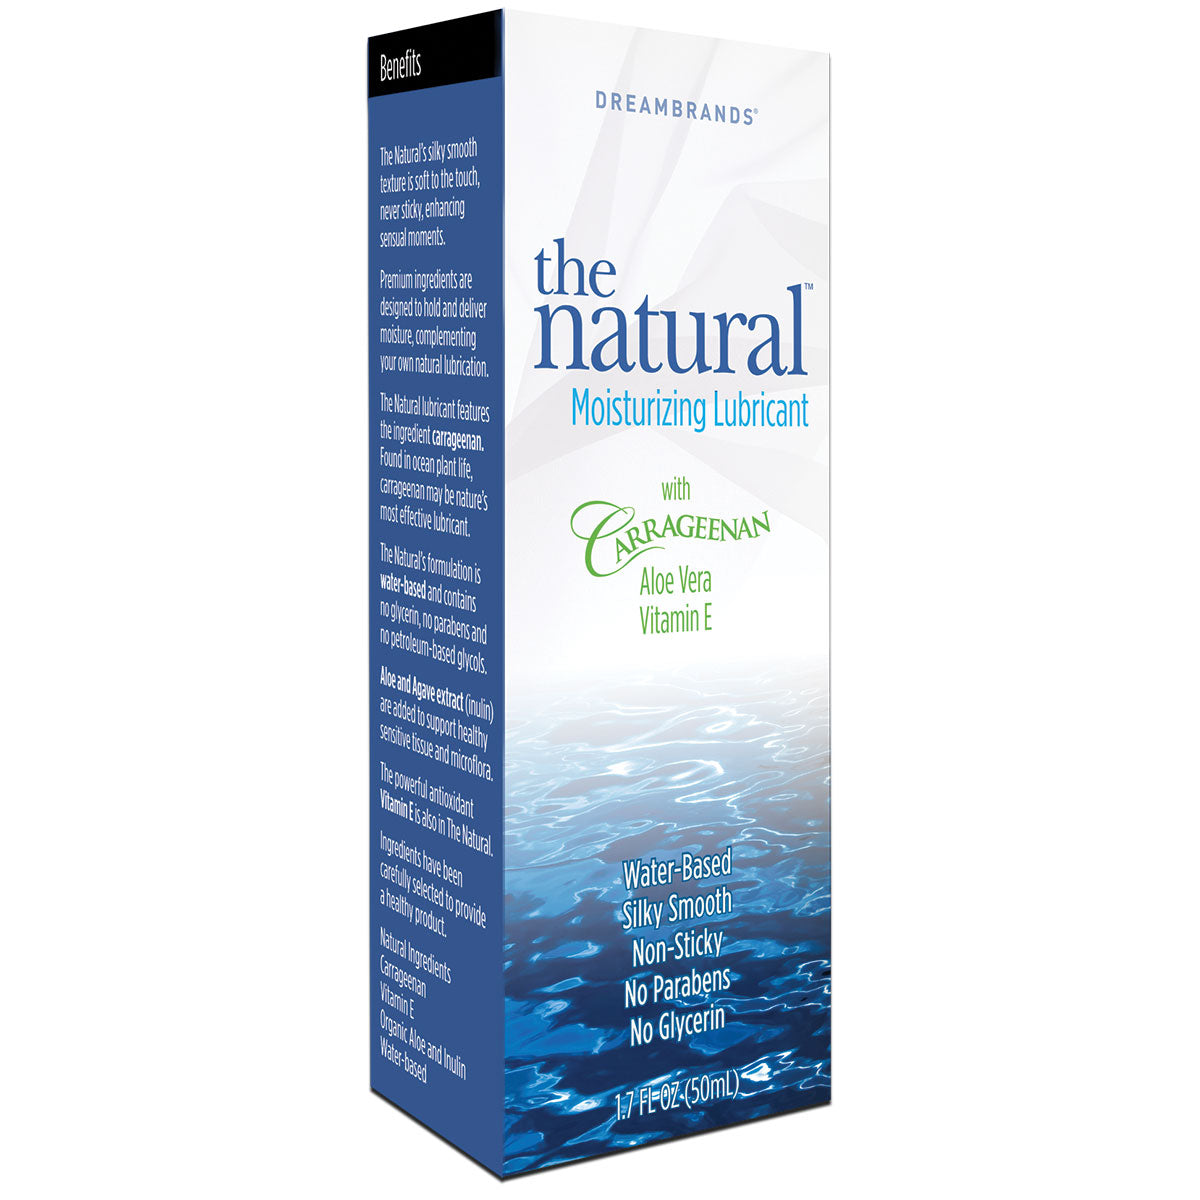 Dreambrands Natural Moisturizing Lubricant 1.7oz